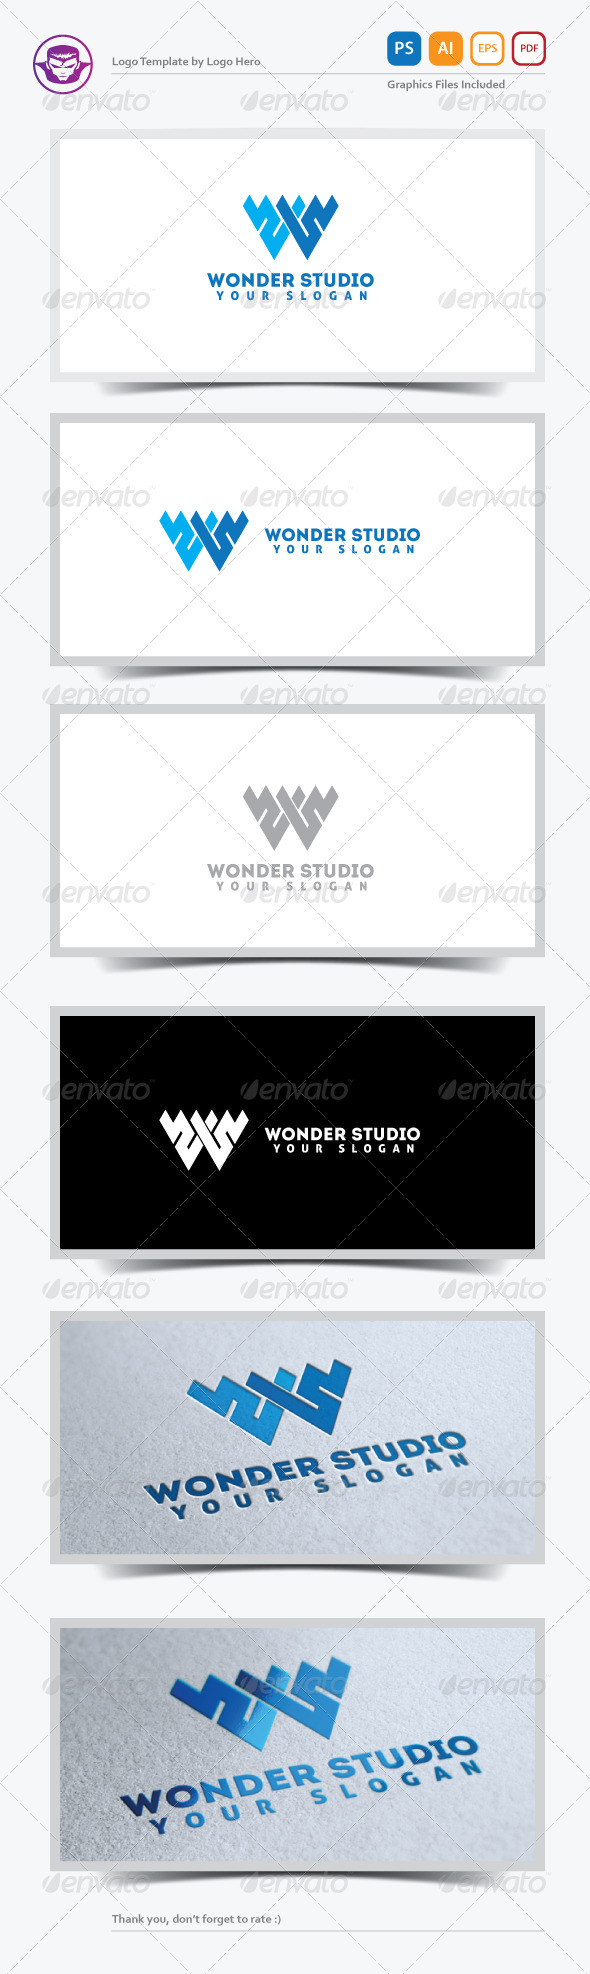 Wonder Studio Logo Template